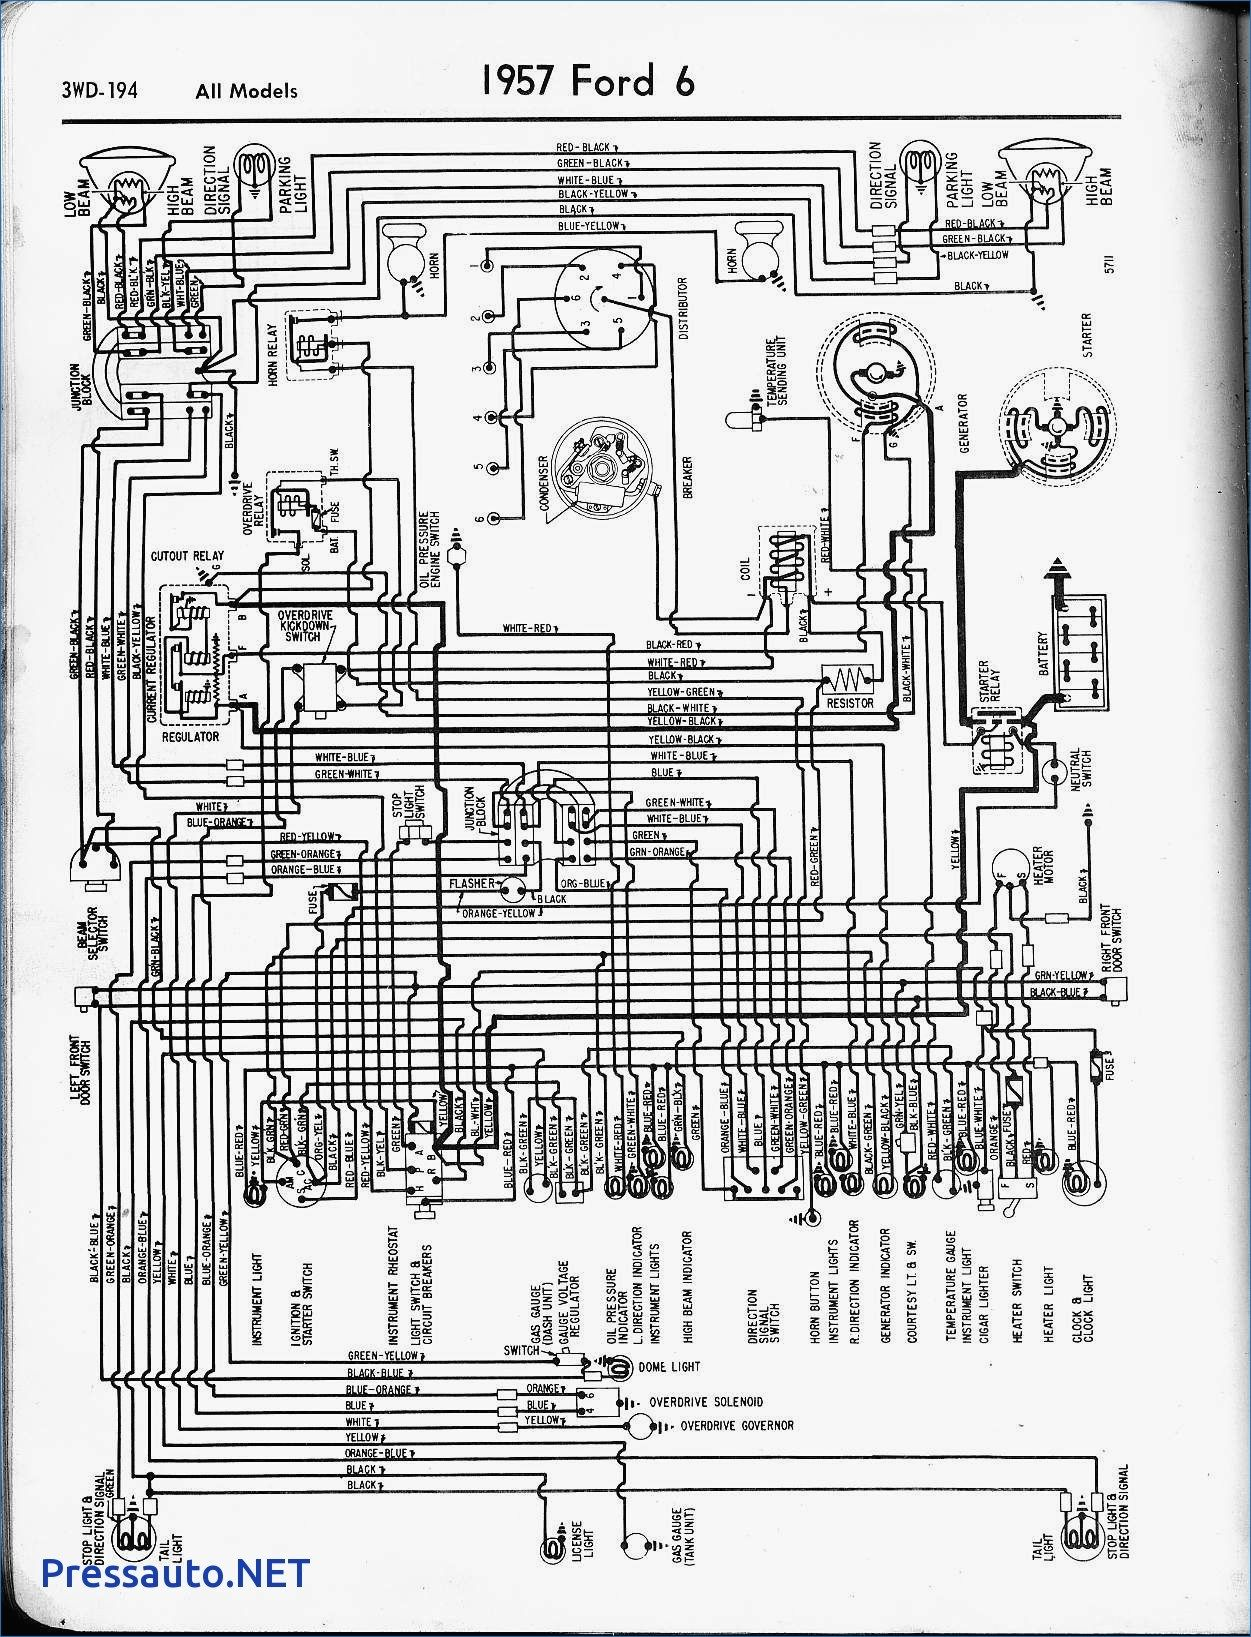 hight resolution of wiring diagram for peugeot 307 wiring diagram go peugeot 307 cc stereo wiring diagram peugeot 307